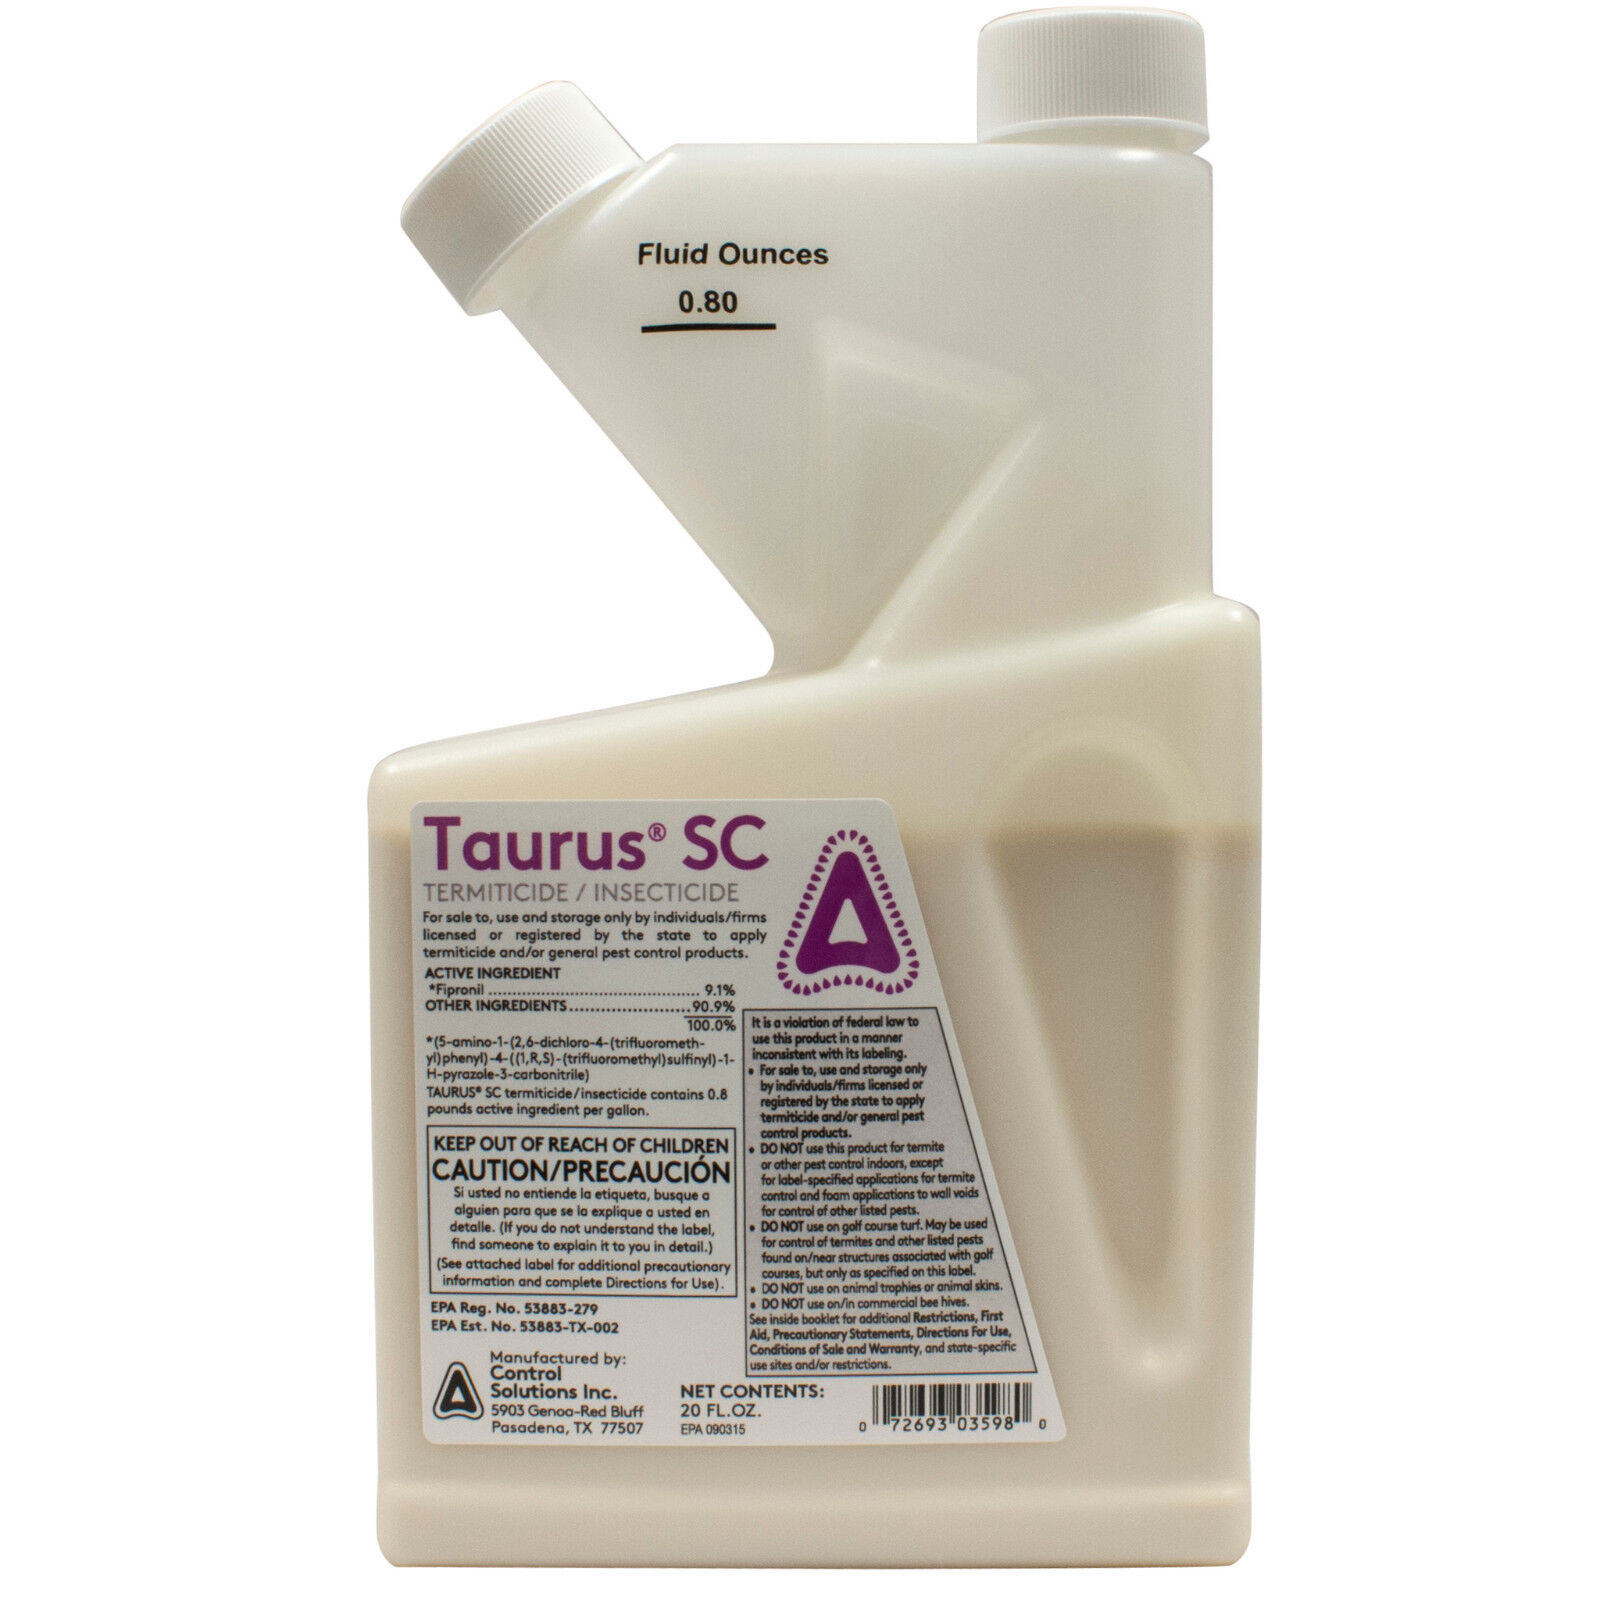 Taurus Sc Termite Spray Ant Spray Generic Termid In Home Garden Yard Garden Outdoor Living Weed Pest Control Insect Grub Control Insecticides Ebay For Blanja